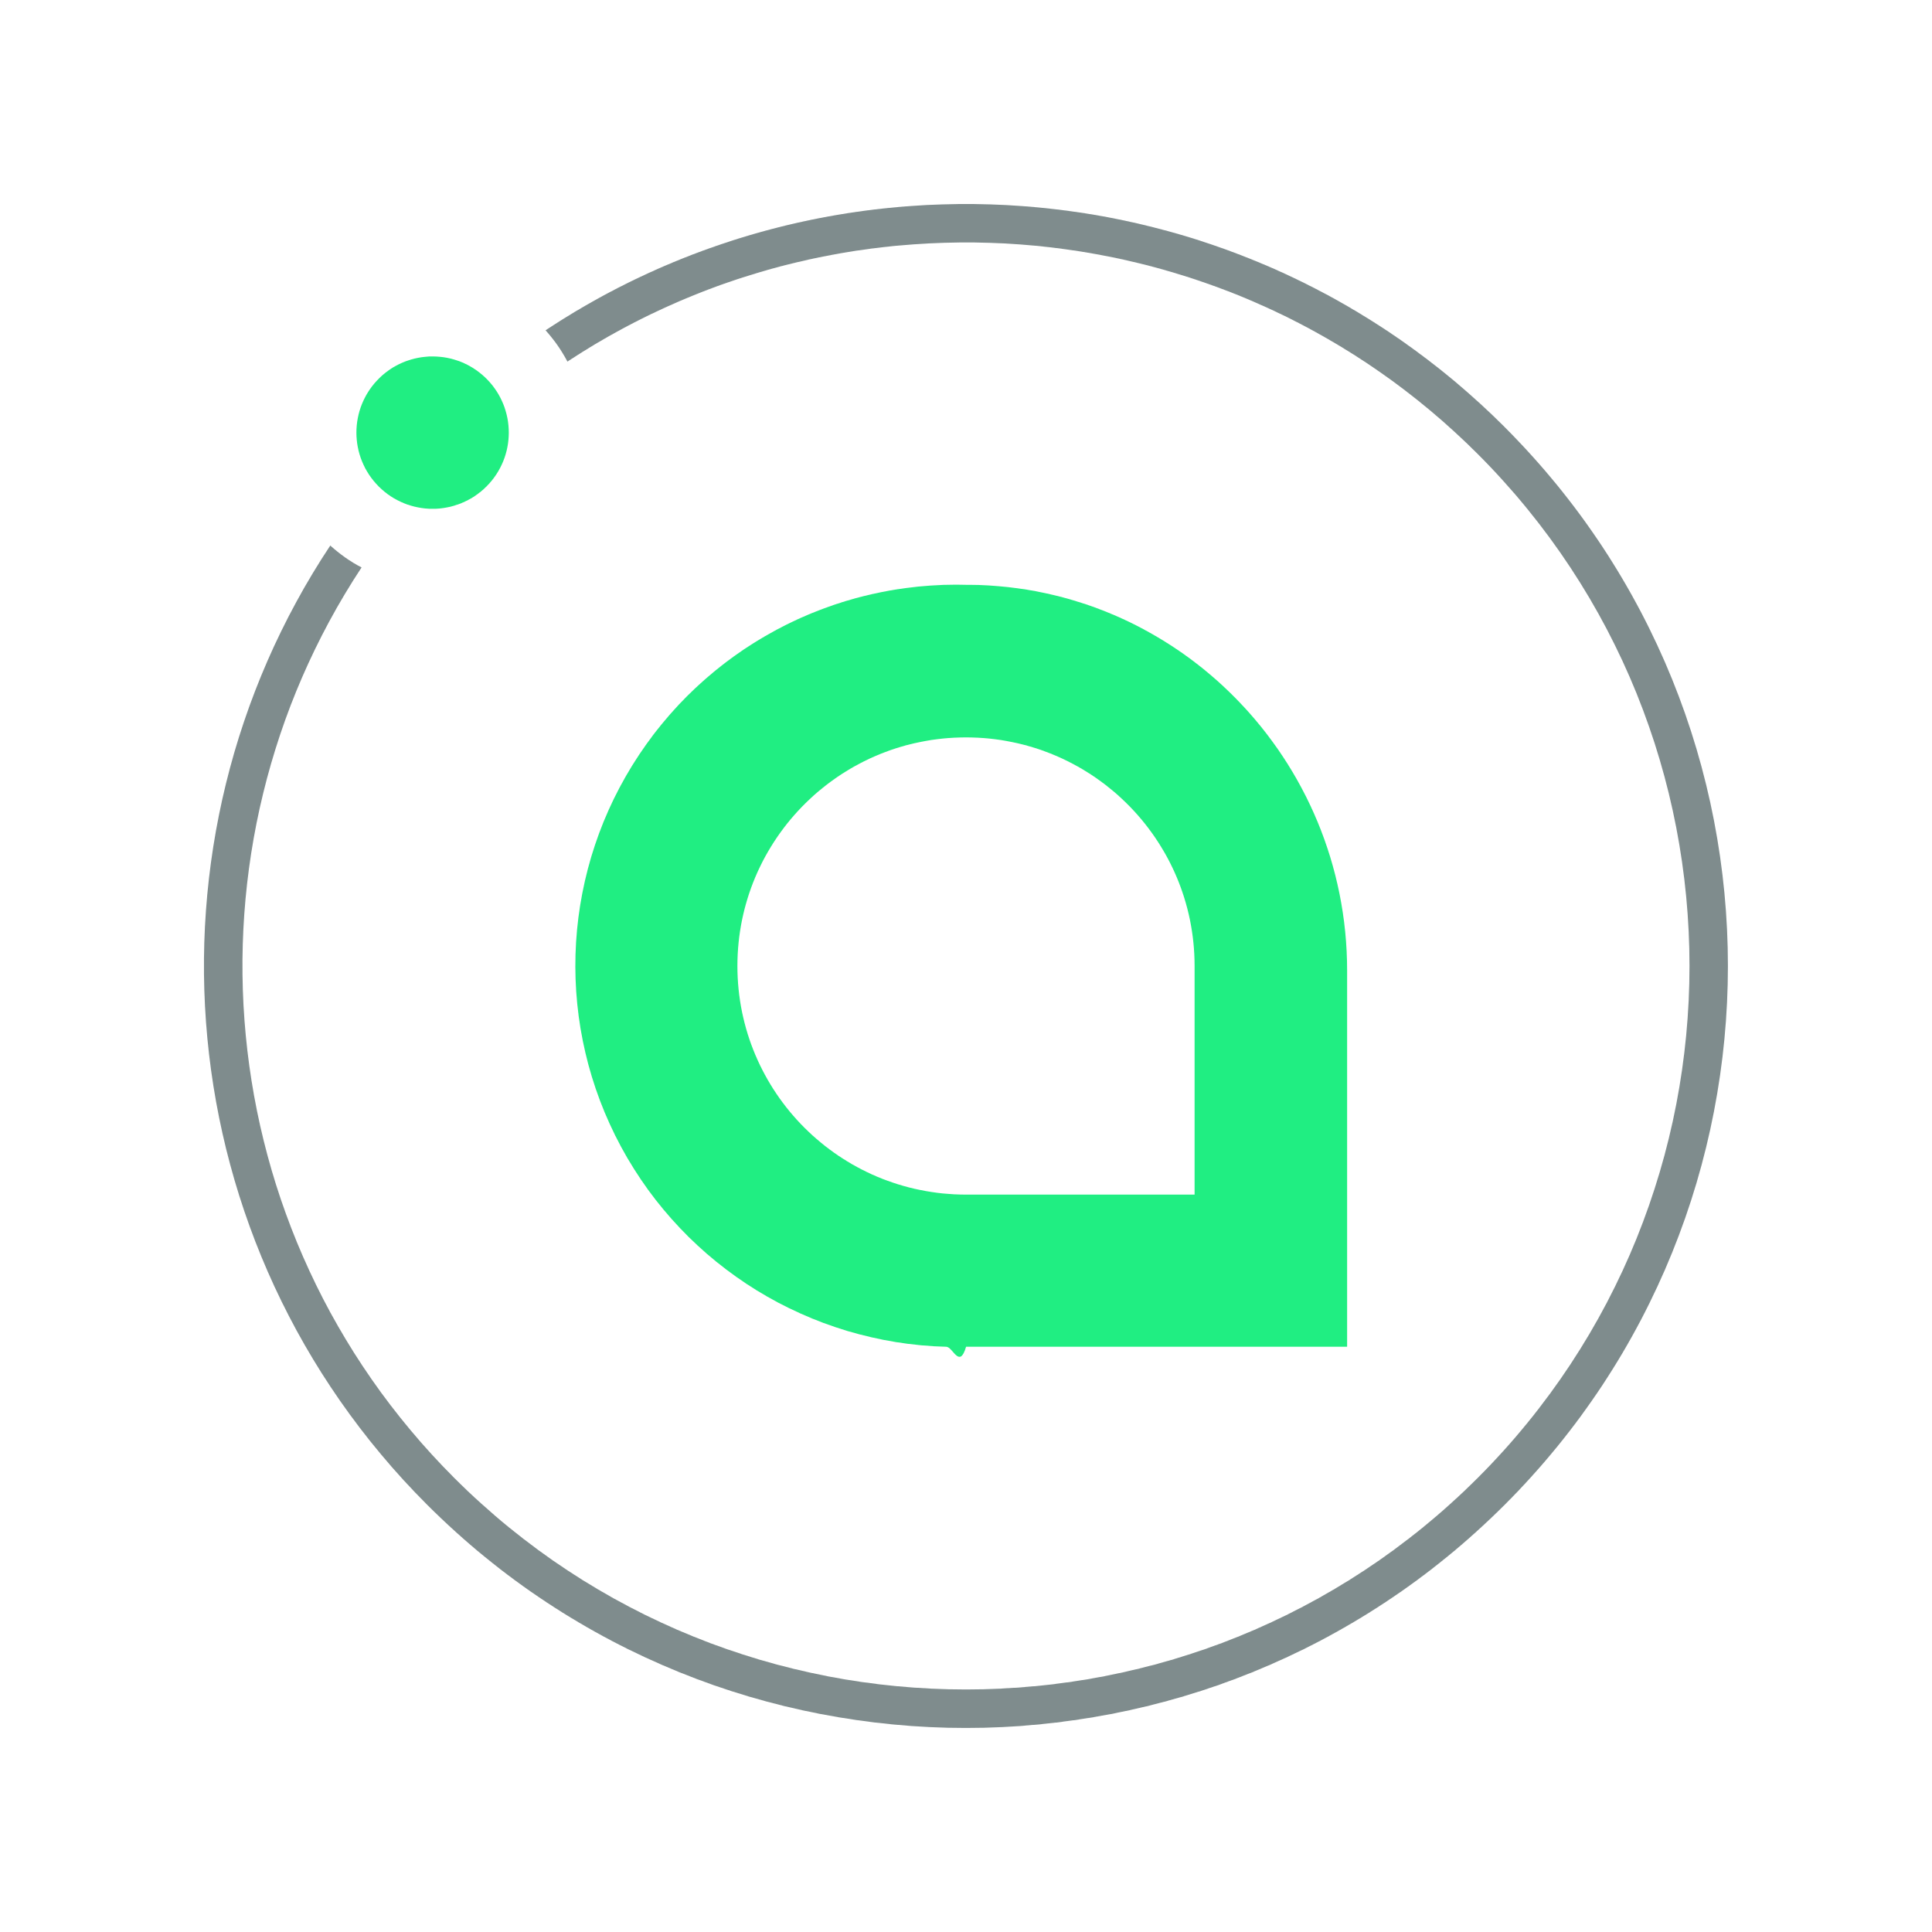 Siacoin koers - cryptocurrency overzicht